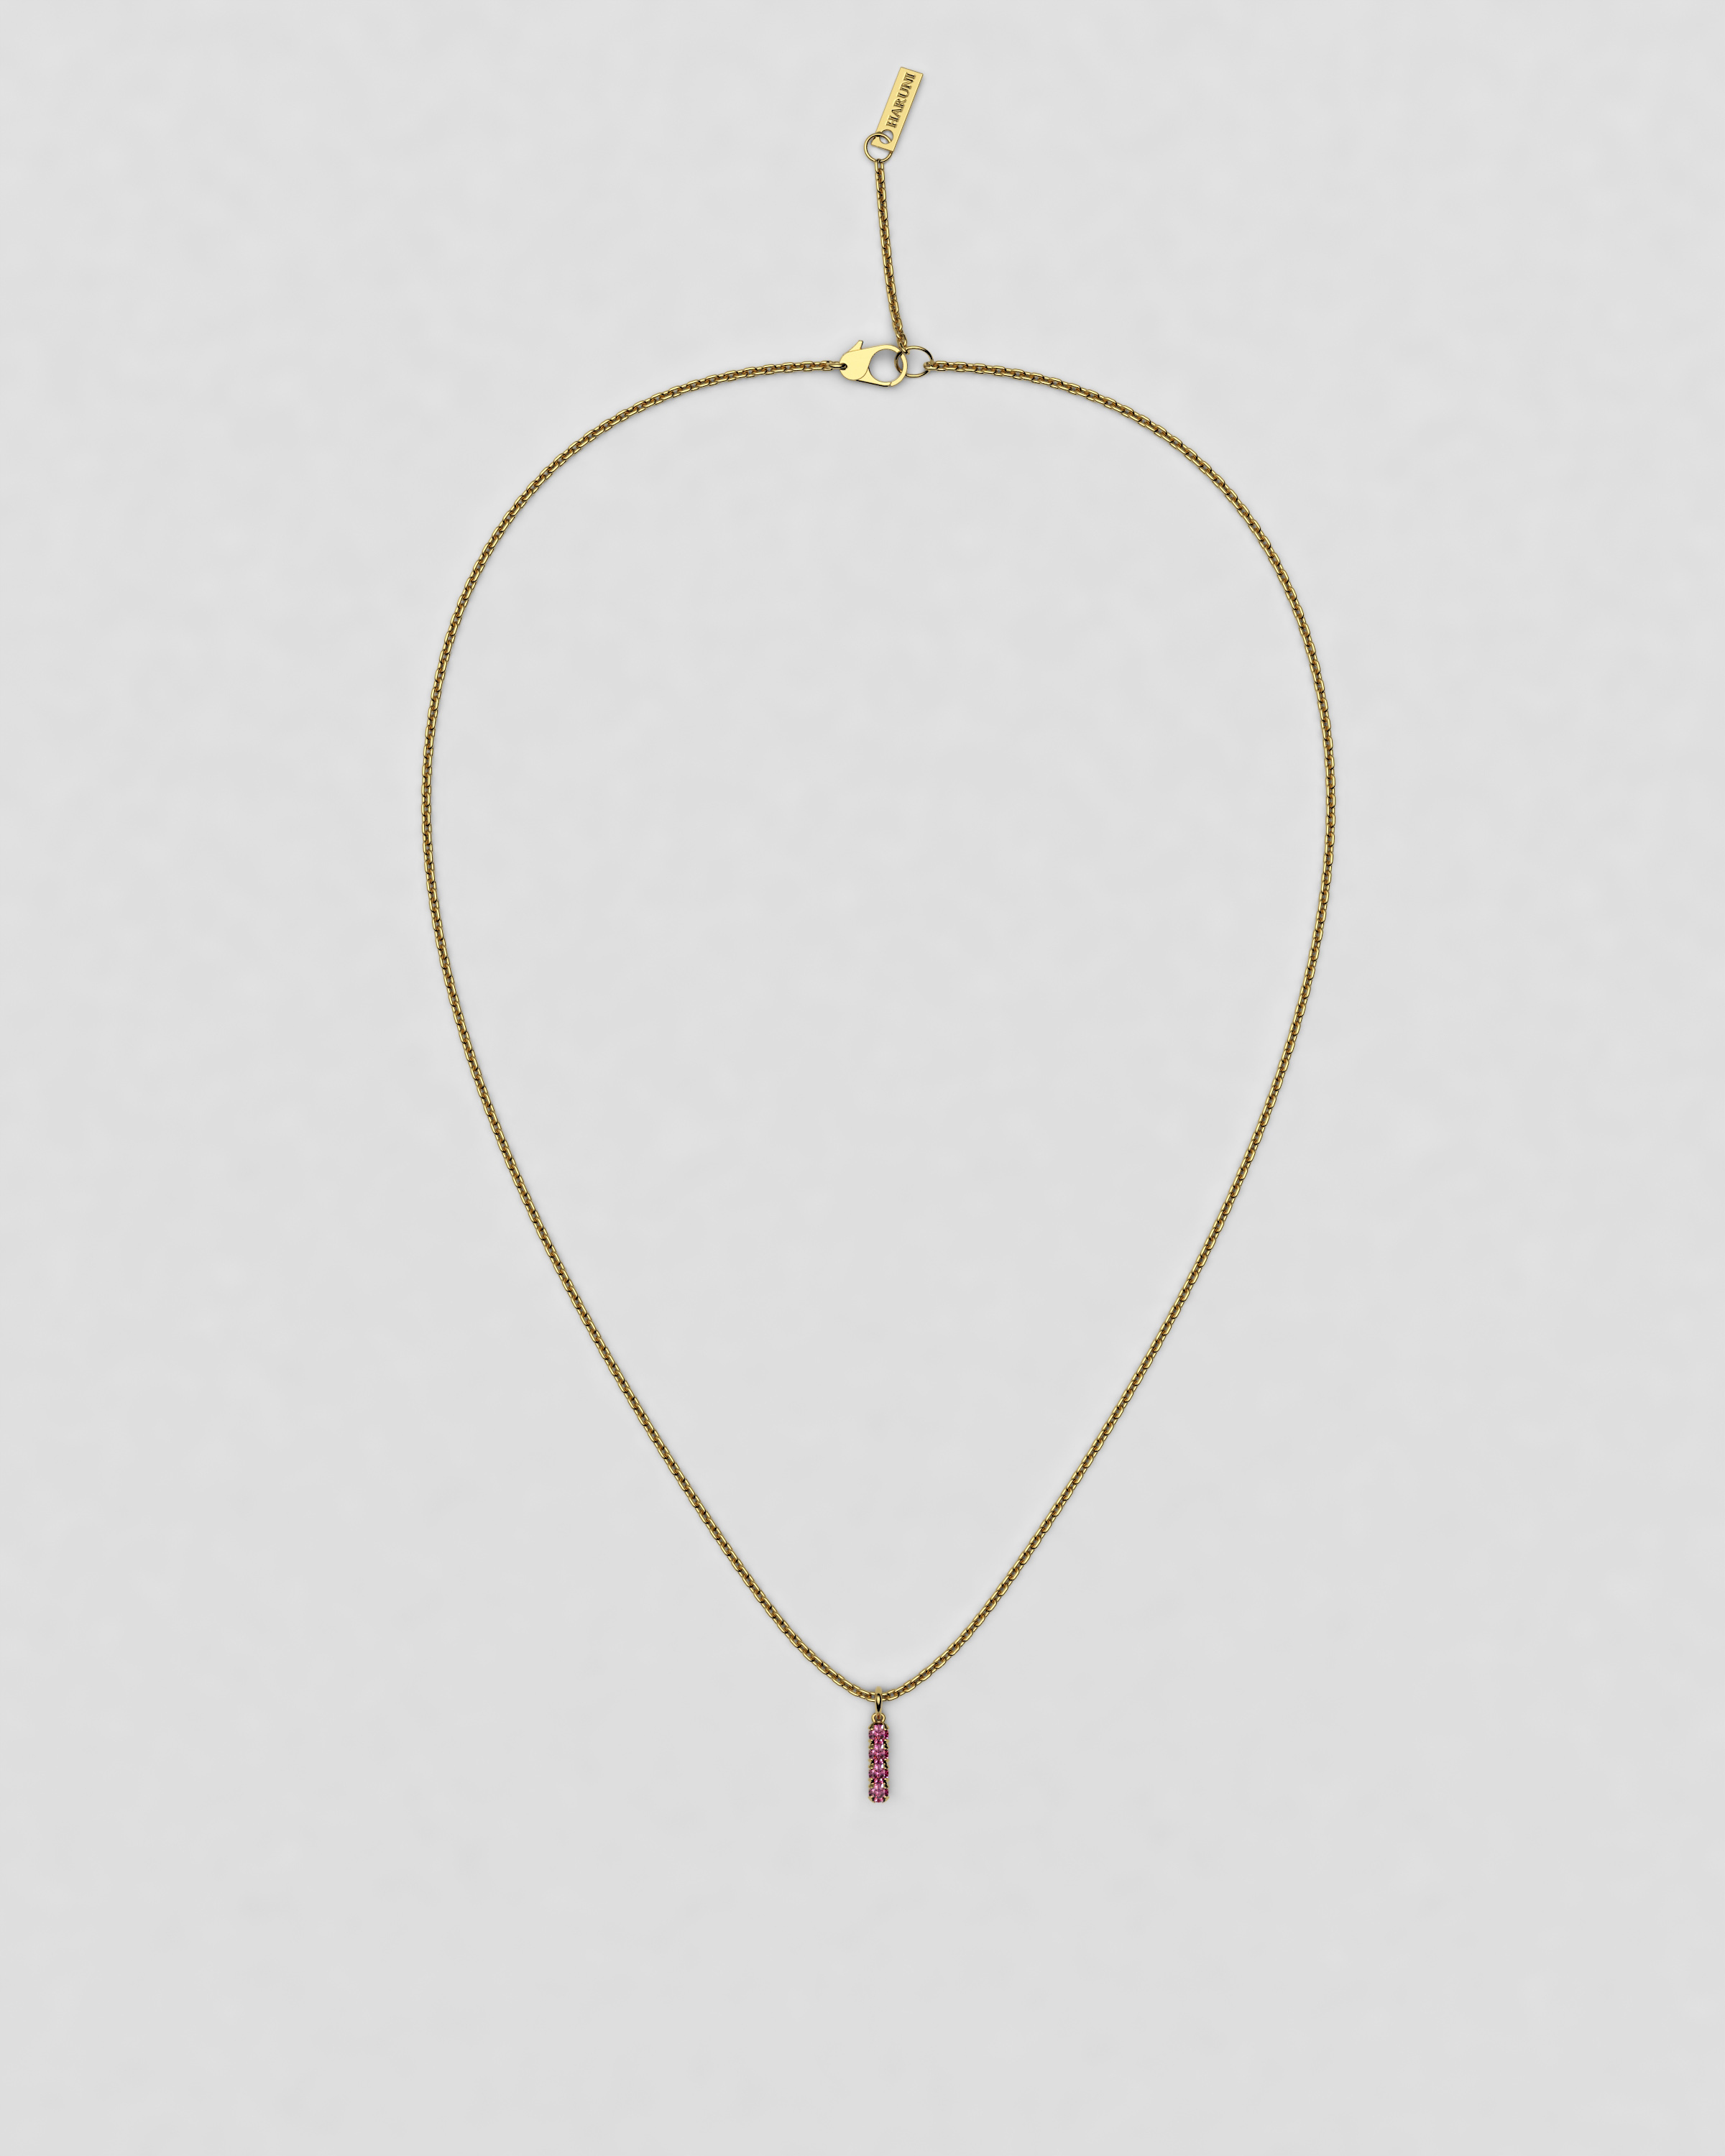 blossom necklace and short pendant  - pink sapphire and 18k yellow gold